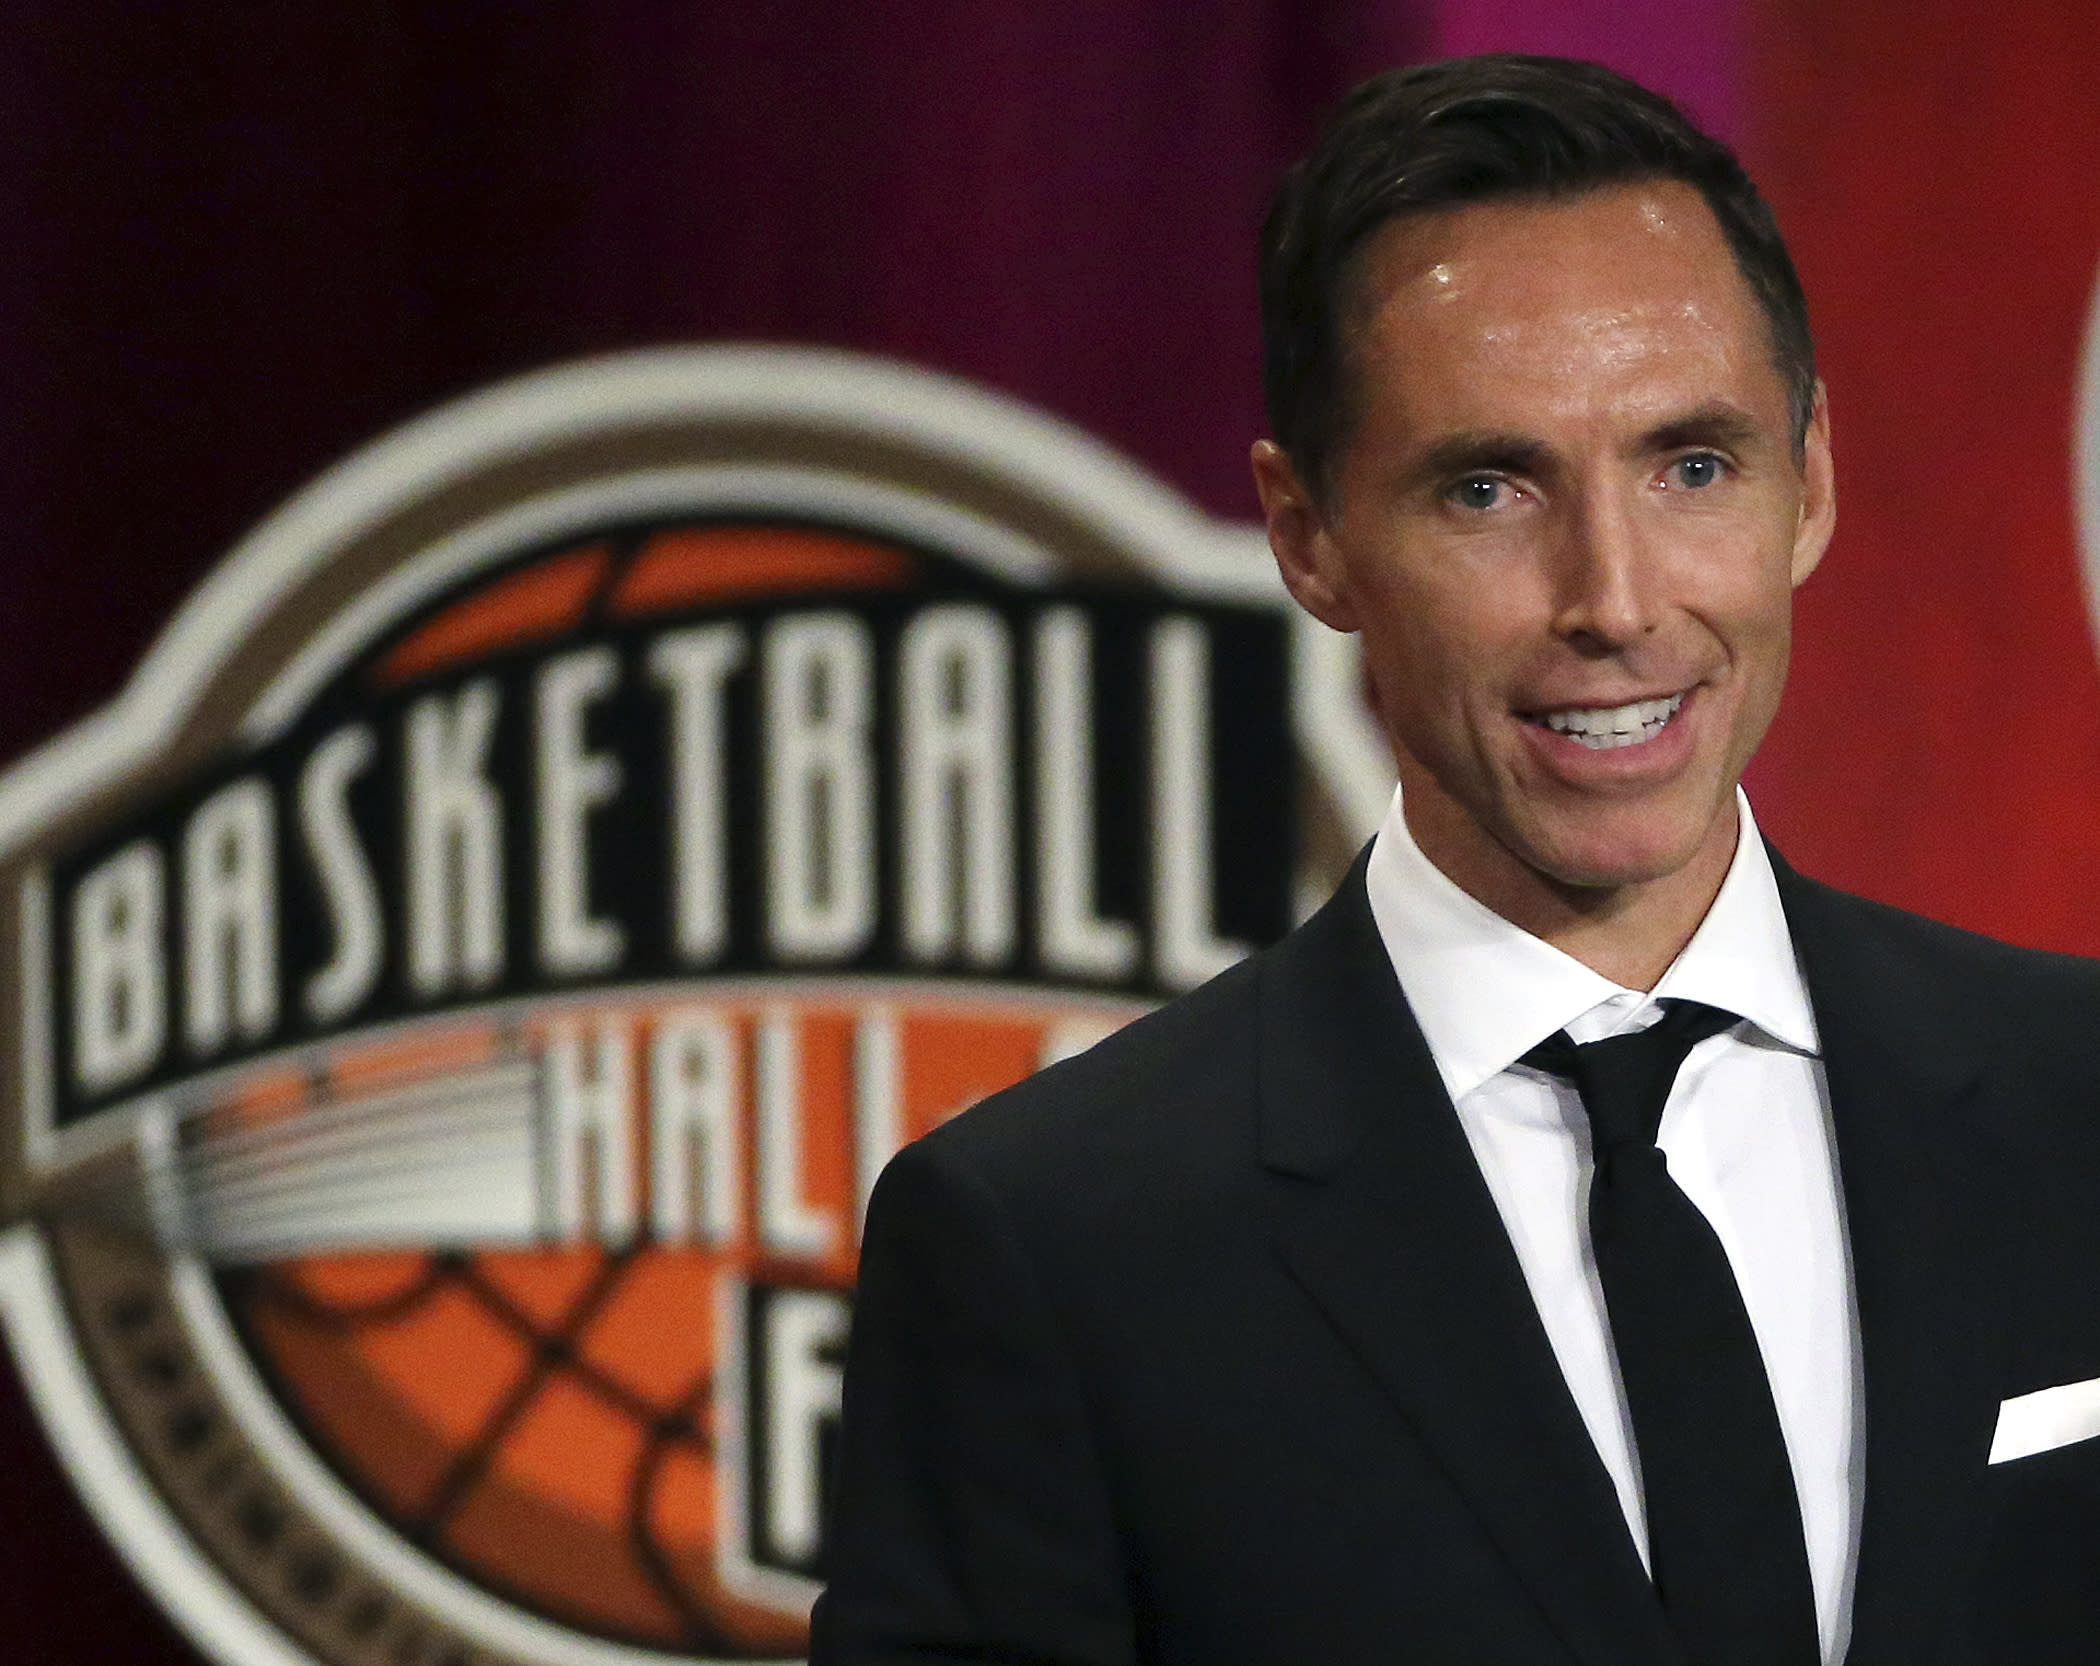 Steve Nash's hiring leads to more questions as Black coaches sit on the sidelines